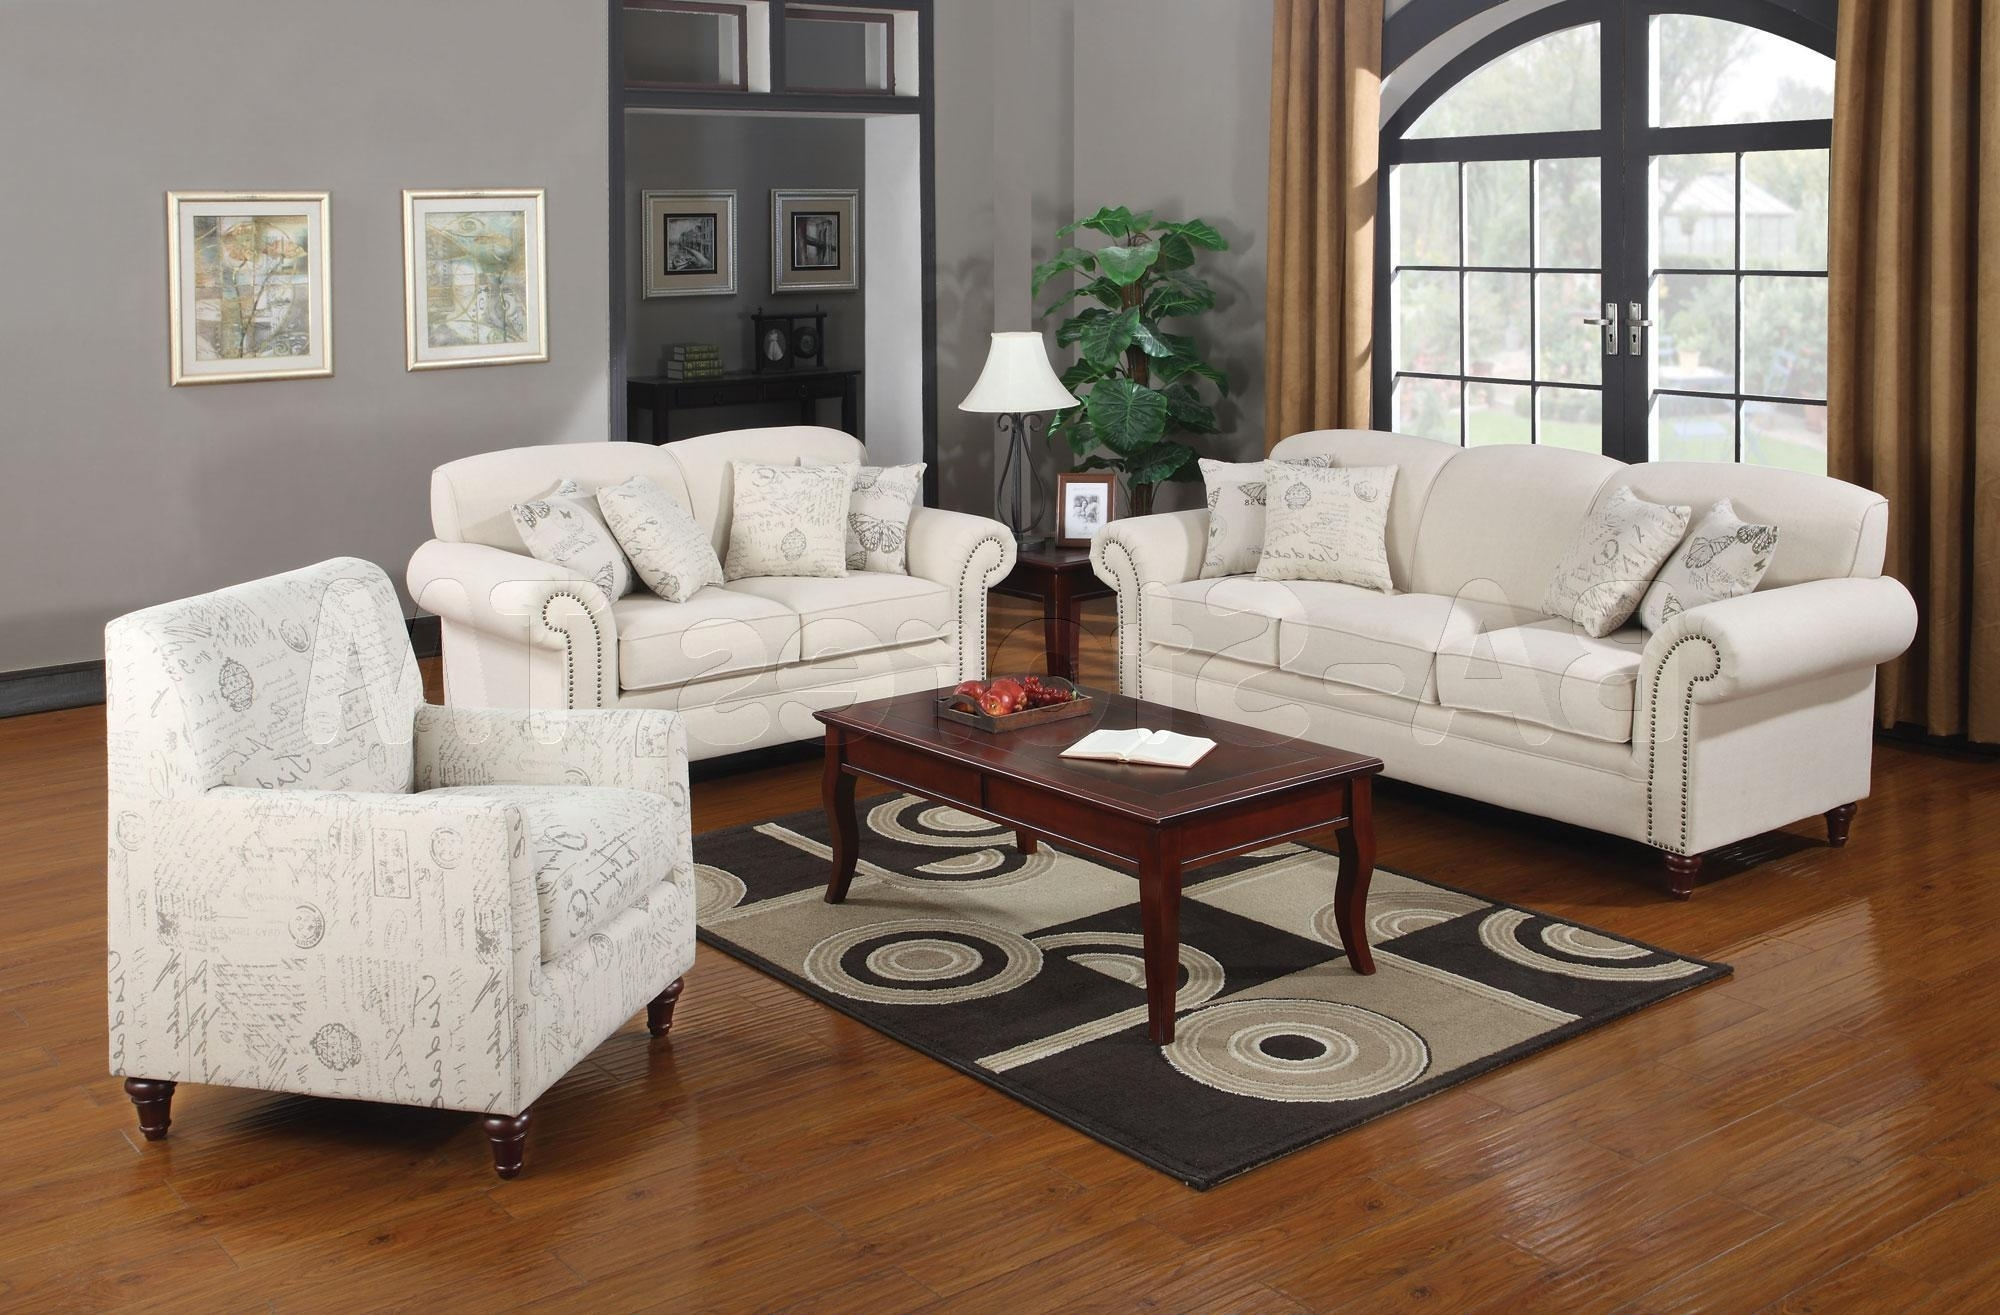 Newest Living Room Sofa And Chair Sets Intended For Furniture: Good Living Room Sets Near Me Ashley Furniture Living (View 17 of 20)